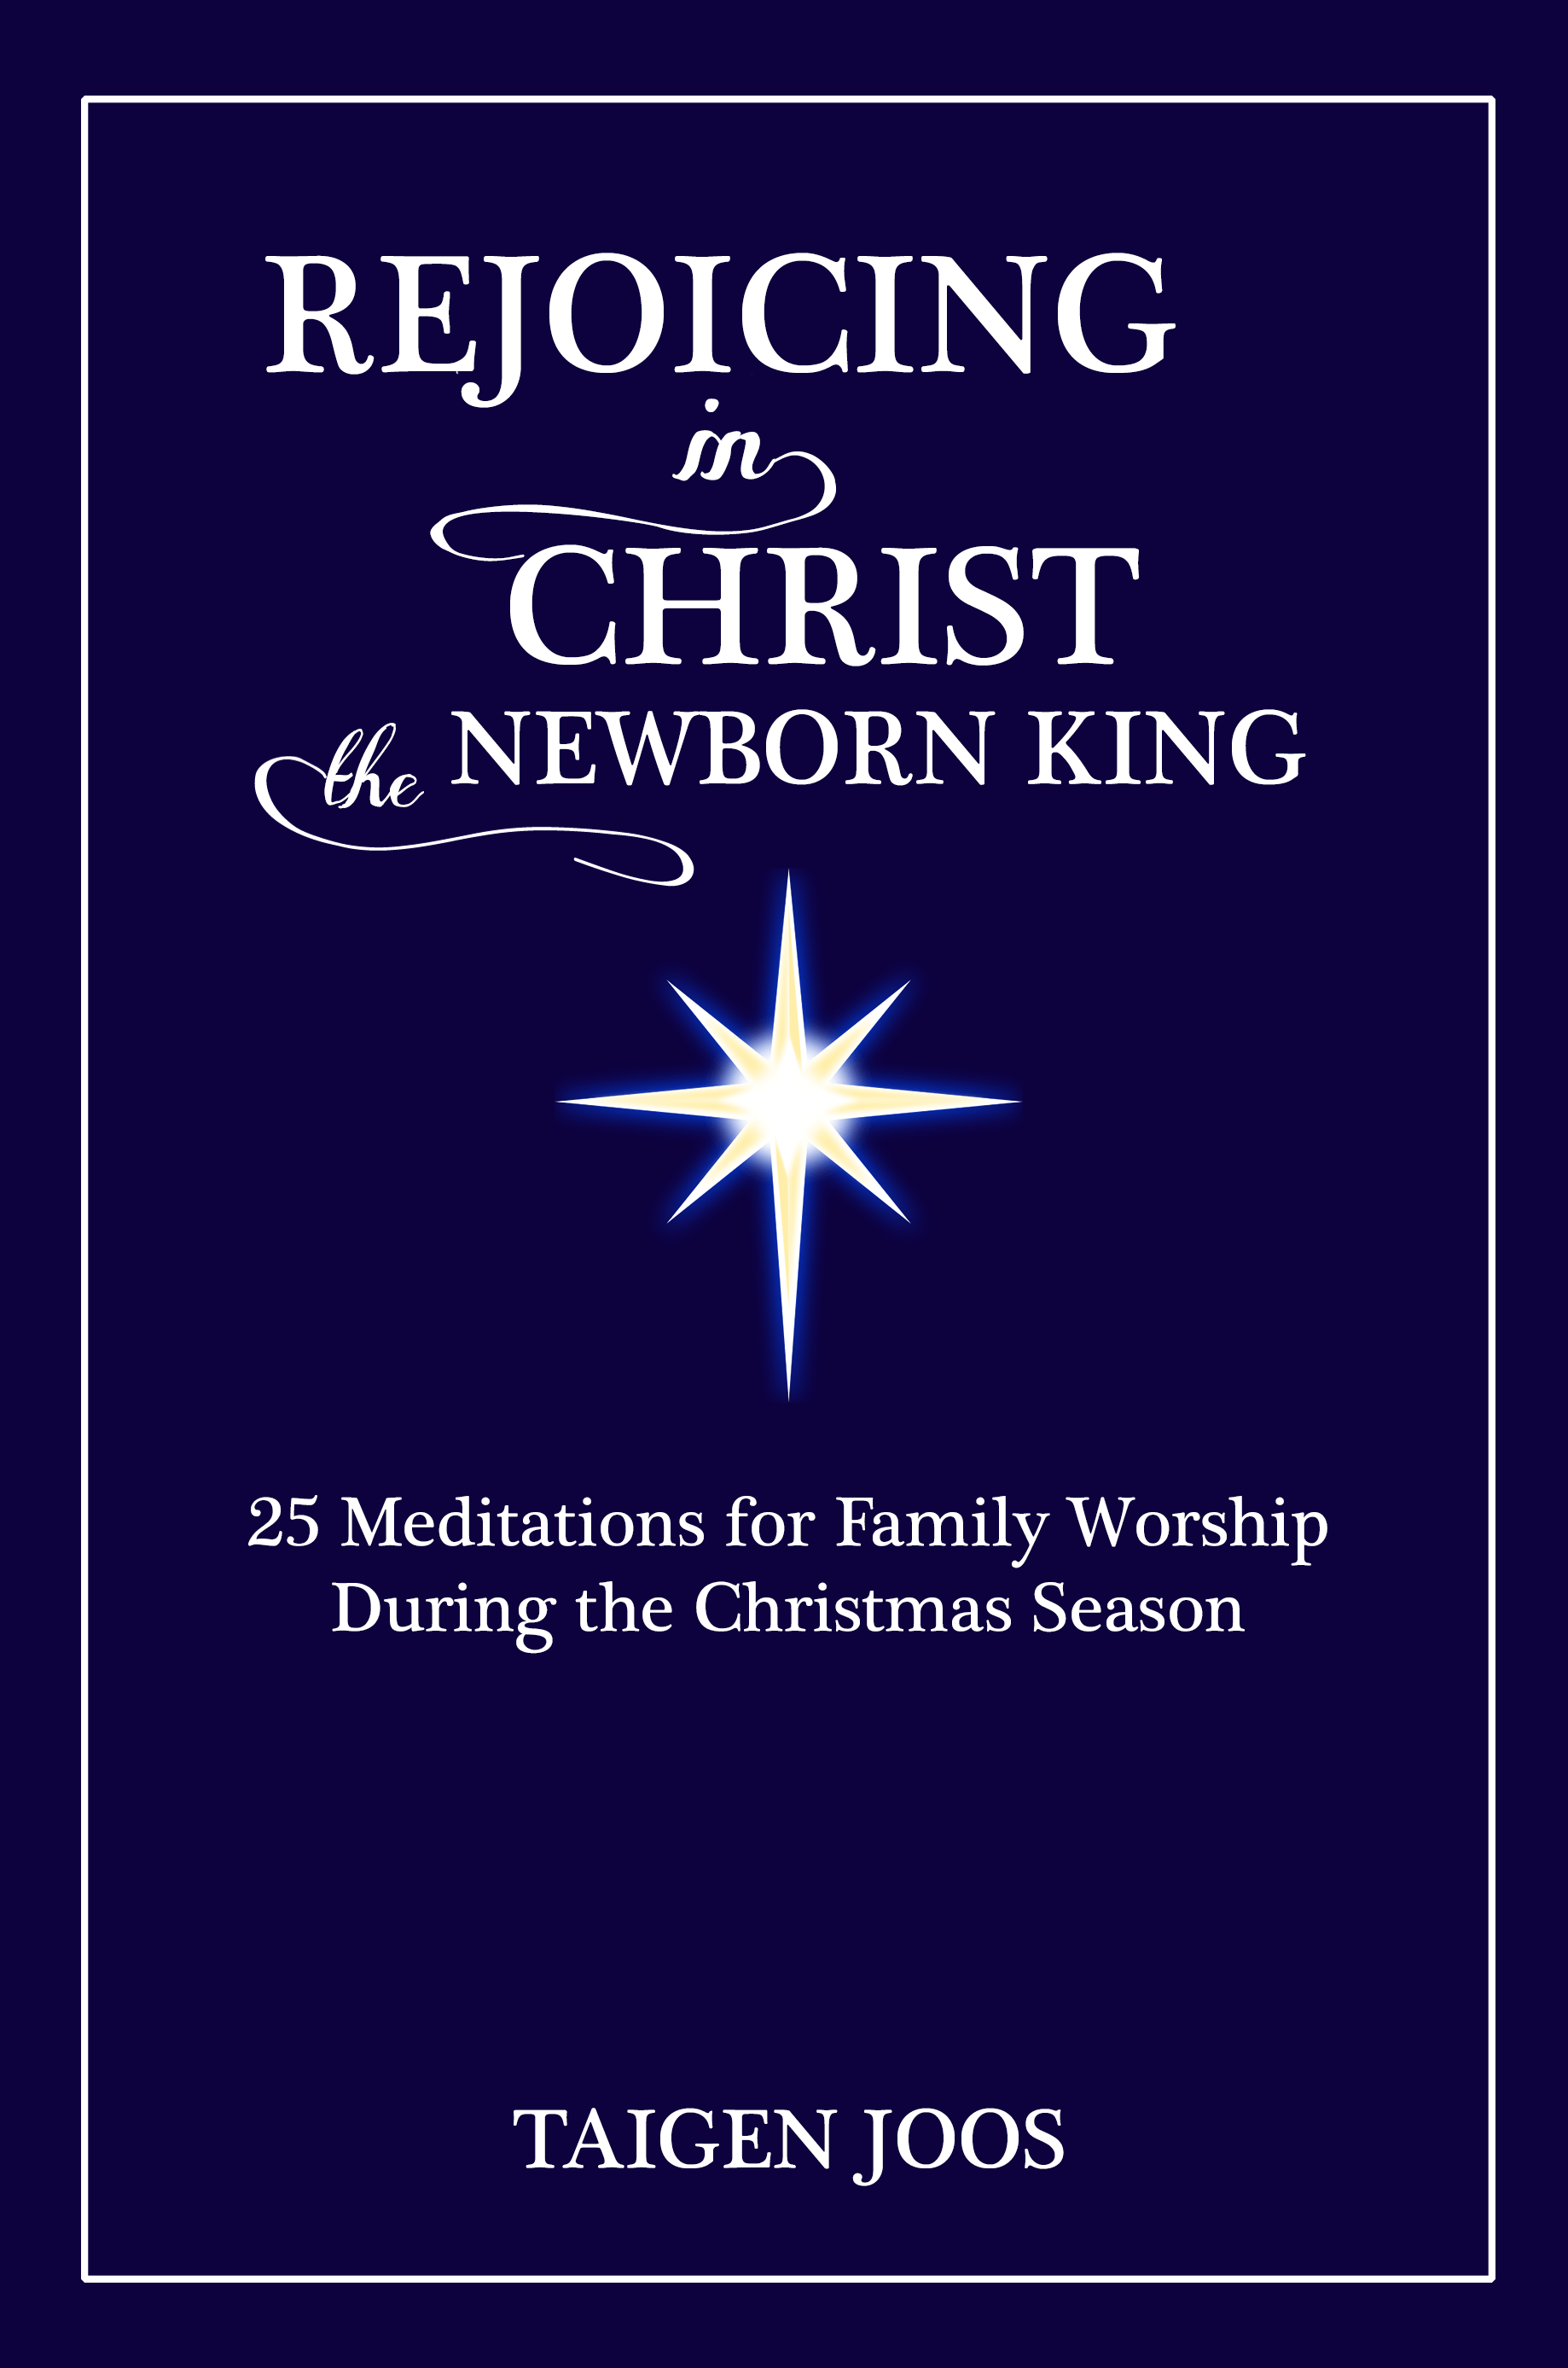 New Christmas devotional for families or individuals!